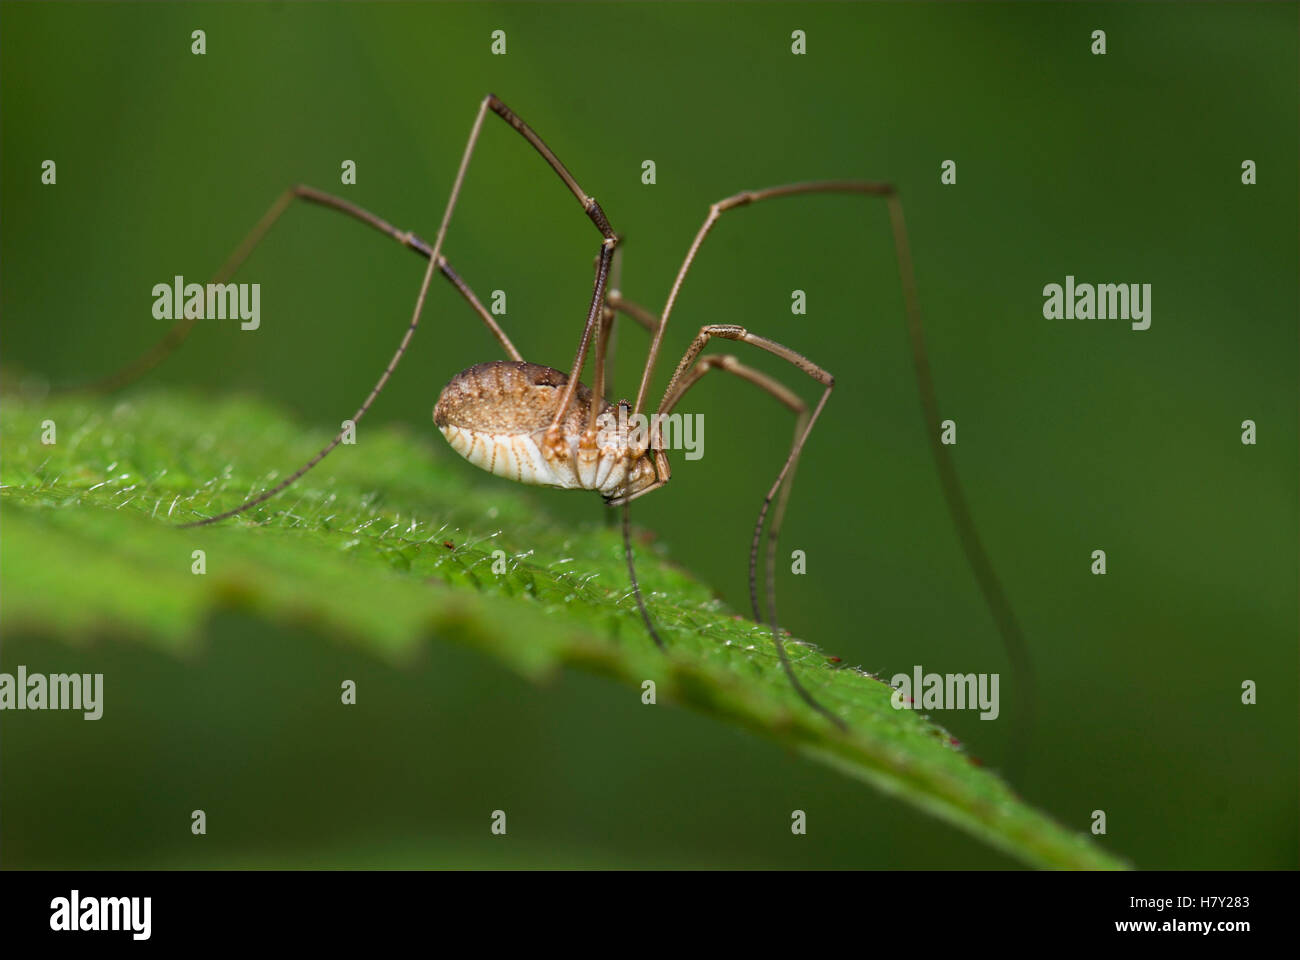 Harvestman Phalangium opilio on leaf in garden closely - Stock Image